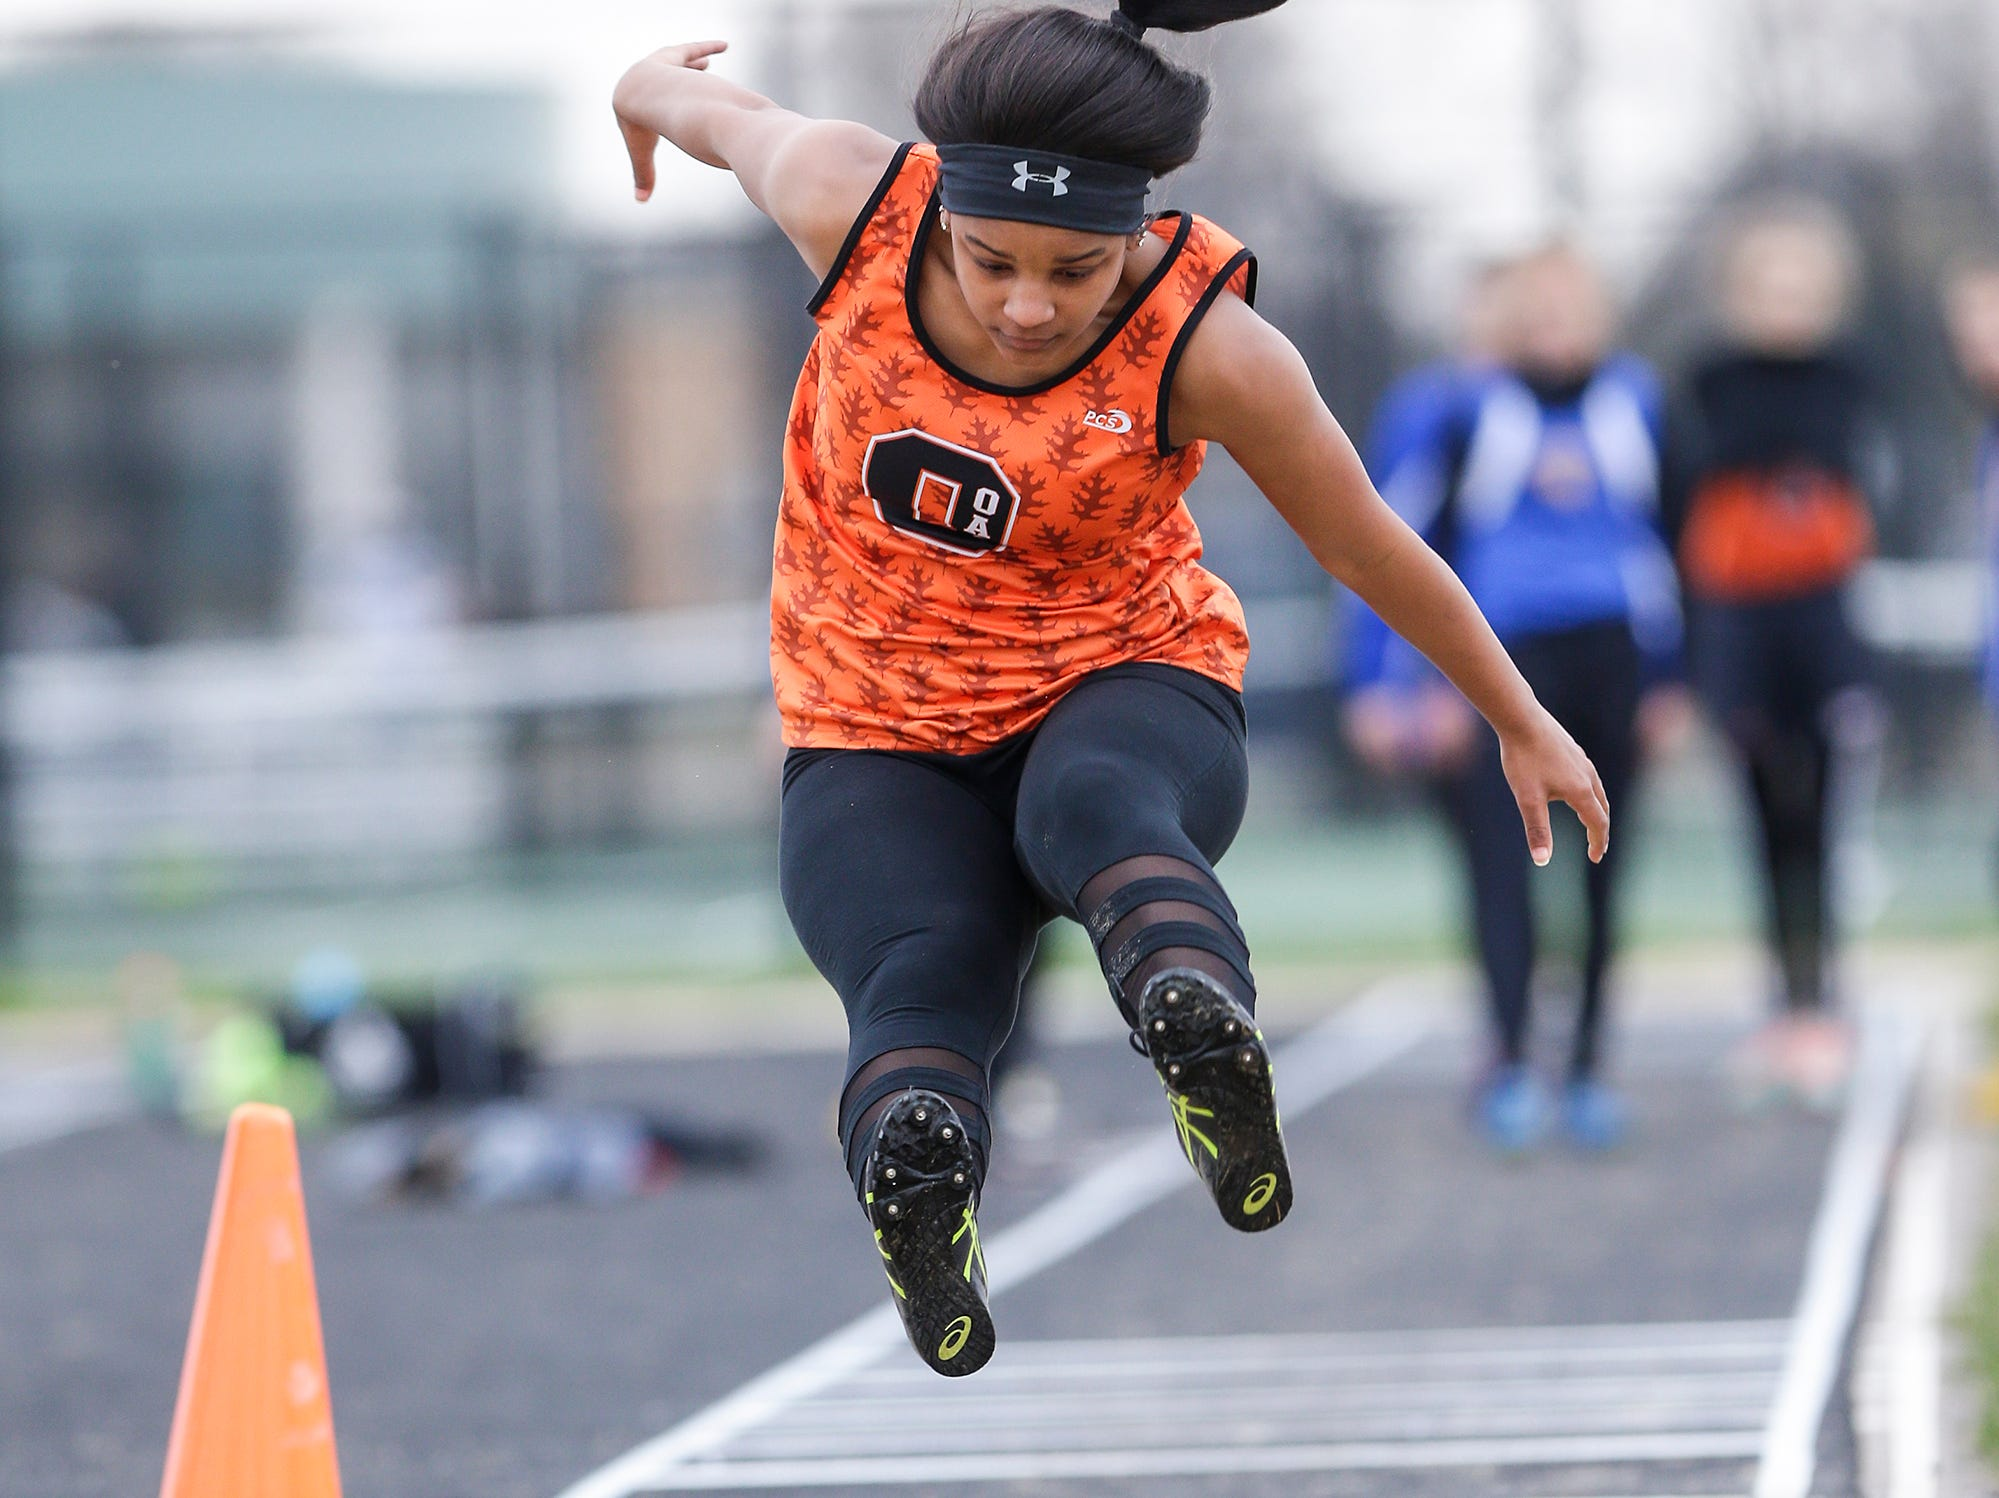 Kaliya Mielke of Oakfield High School competes in the long jump Friday, May 3, 2019 at the Waupun High School Invitational track and field meet. Doug Raflik/USA TODAY NETWORK-Wisconsin